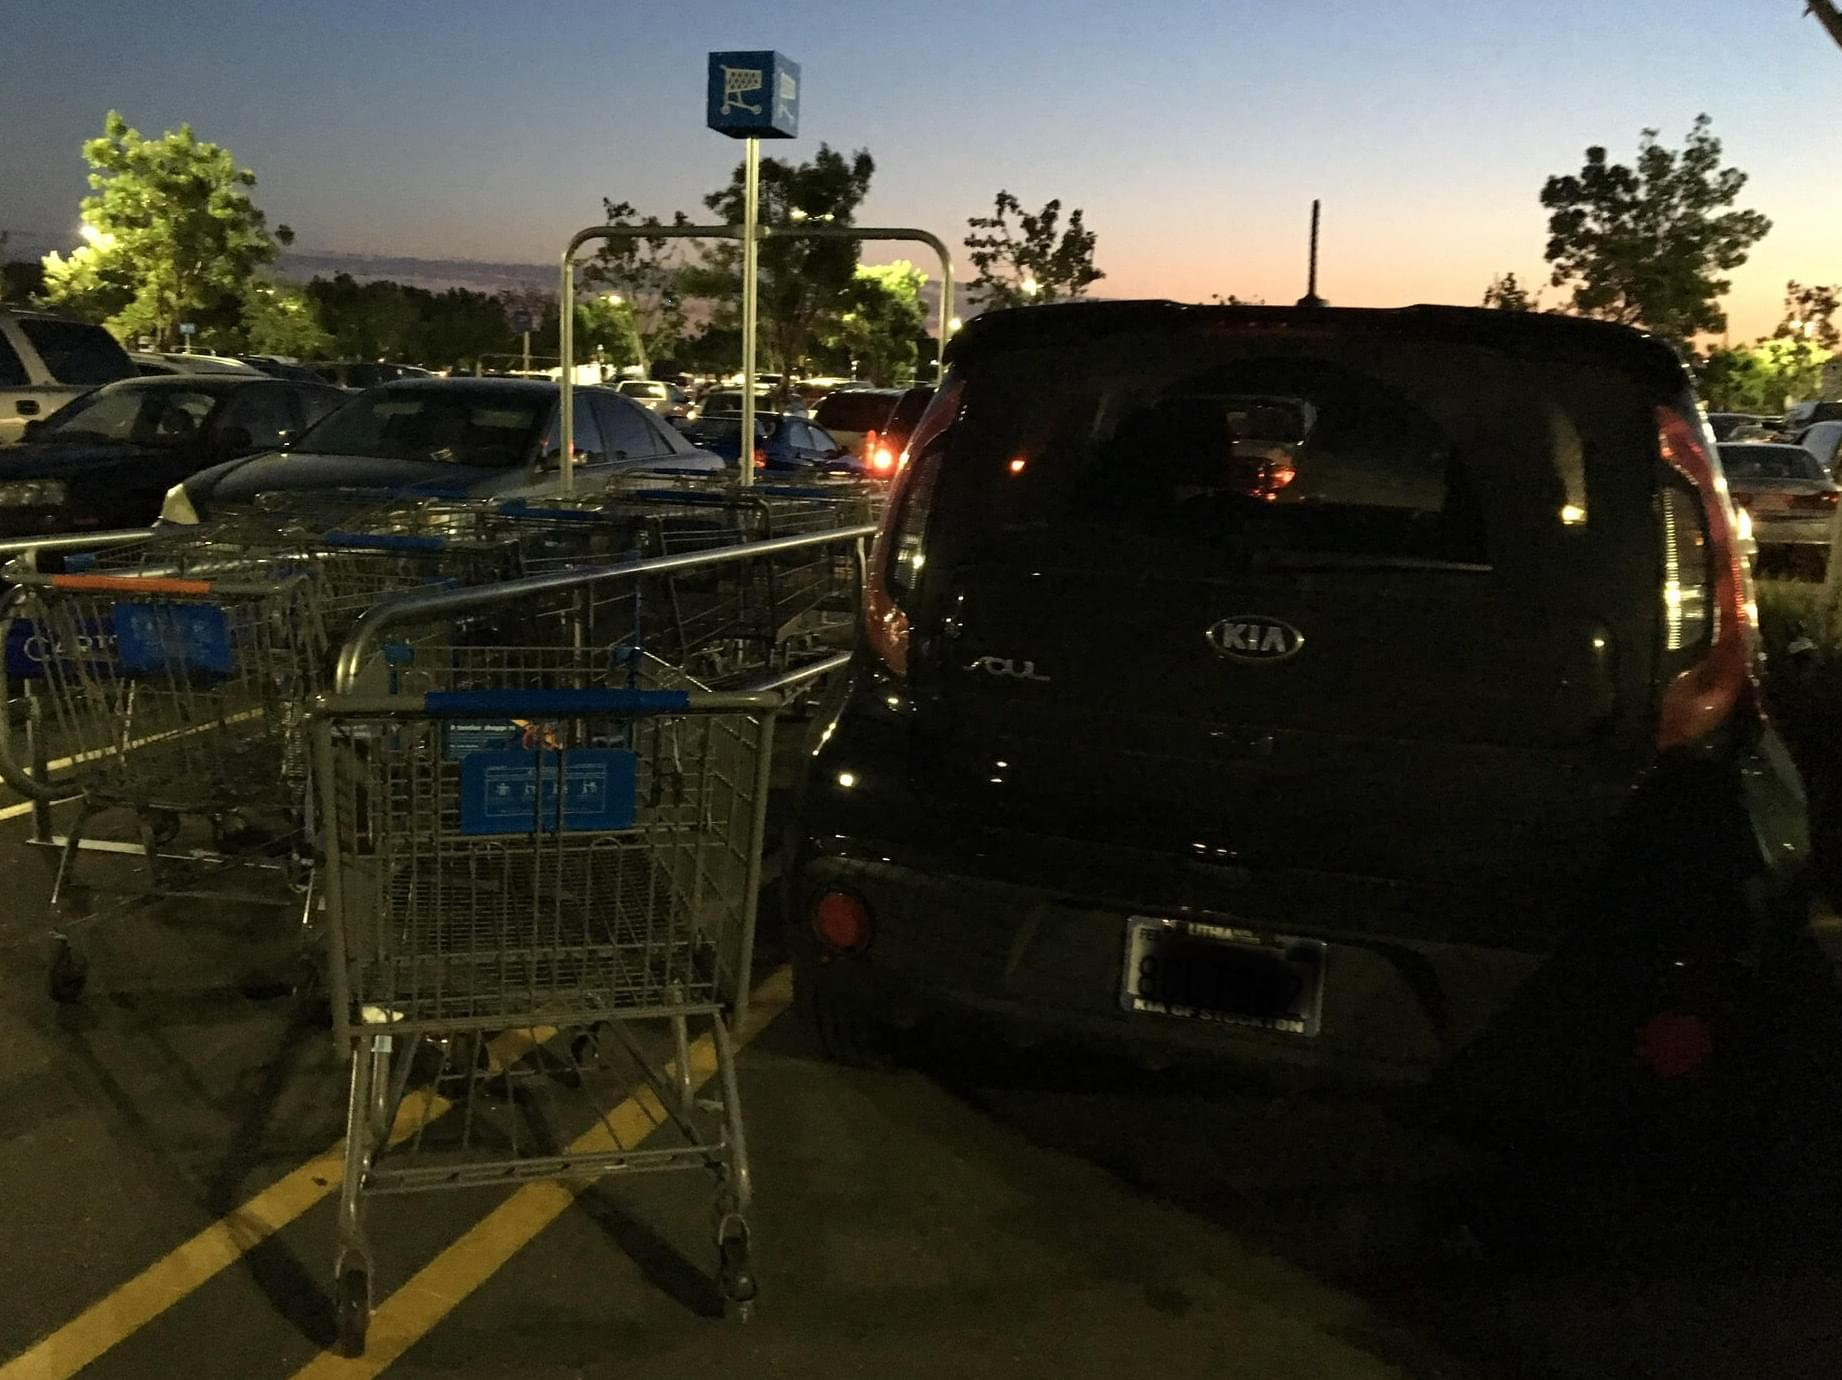 Do You Return Your Shopping Cart to the Cart Corral